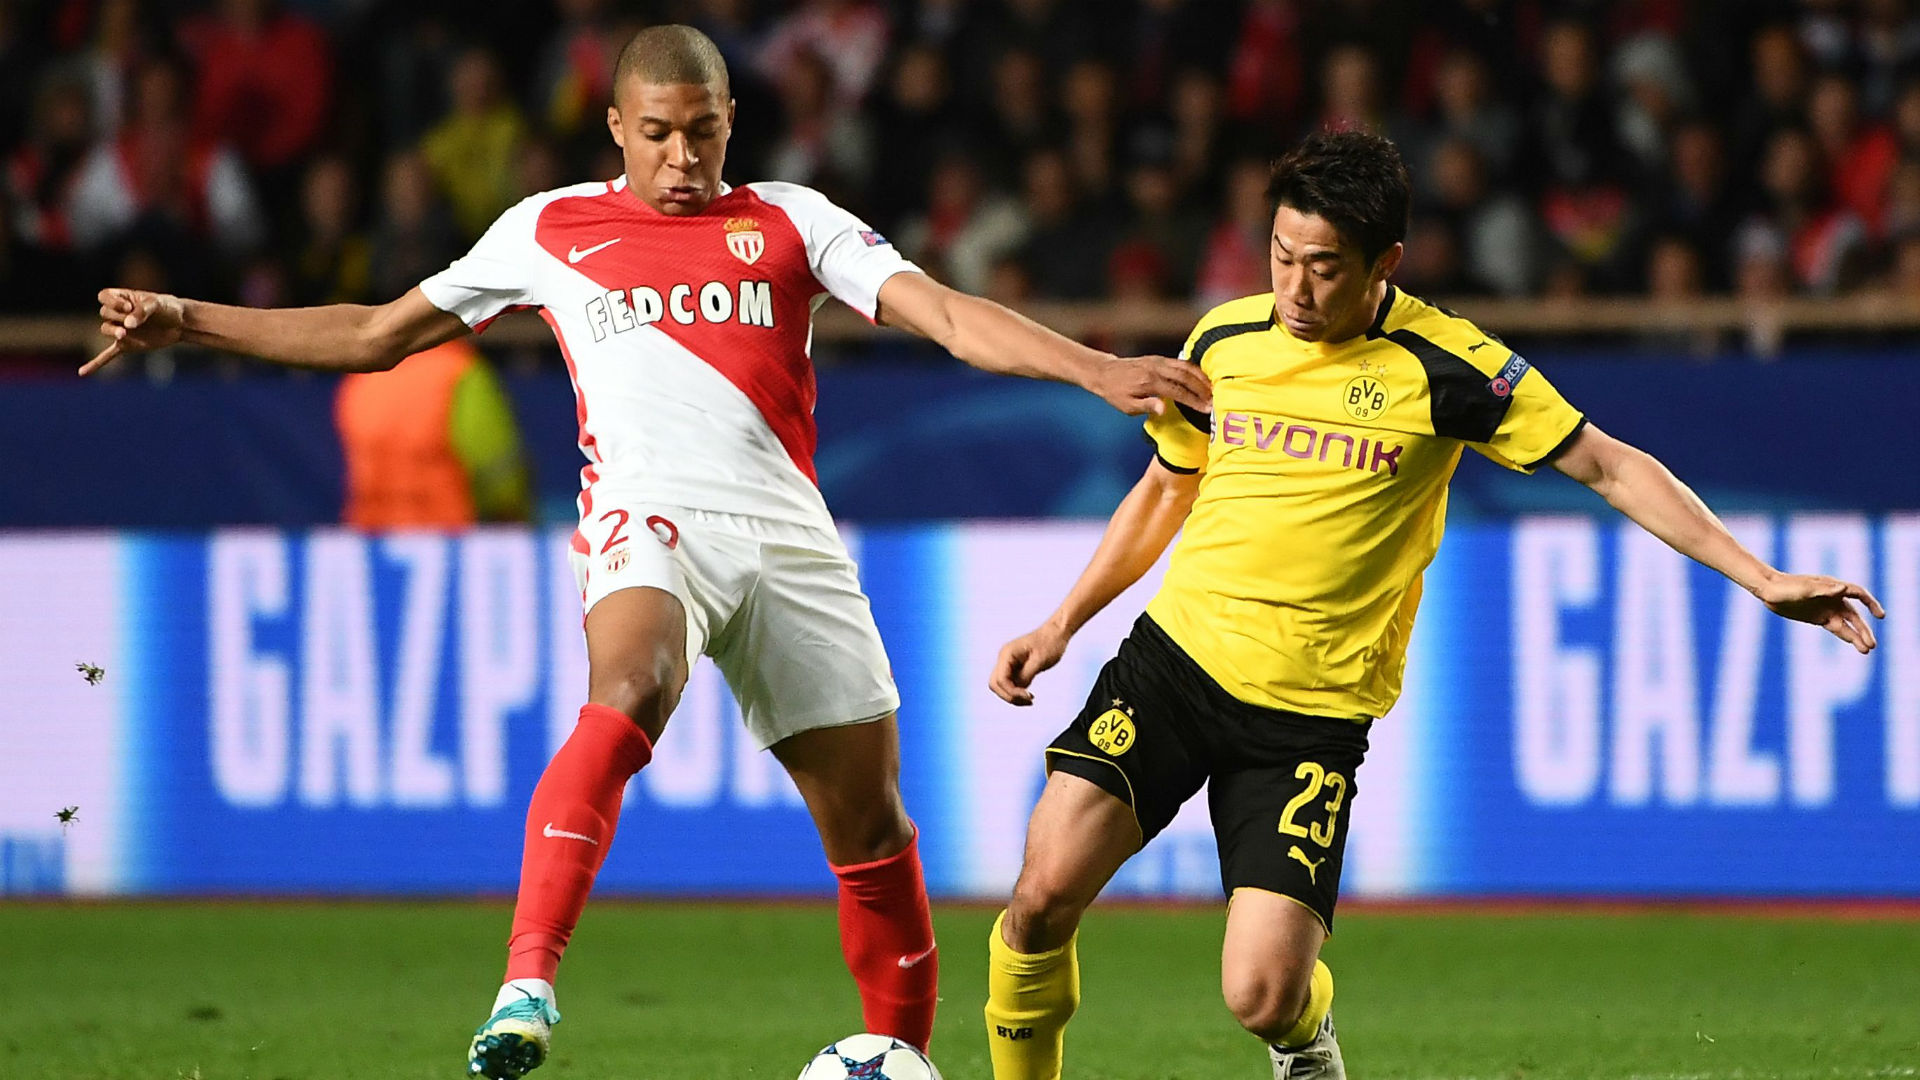 Monaco defeat Dortmund to advance to Champions League semis